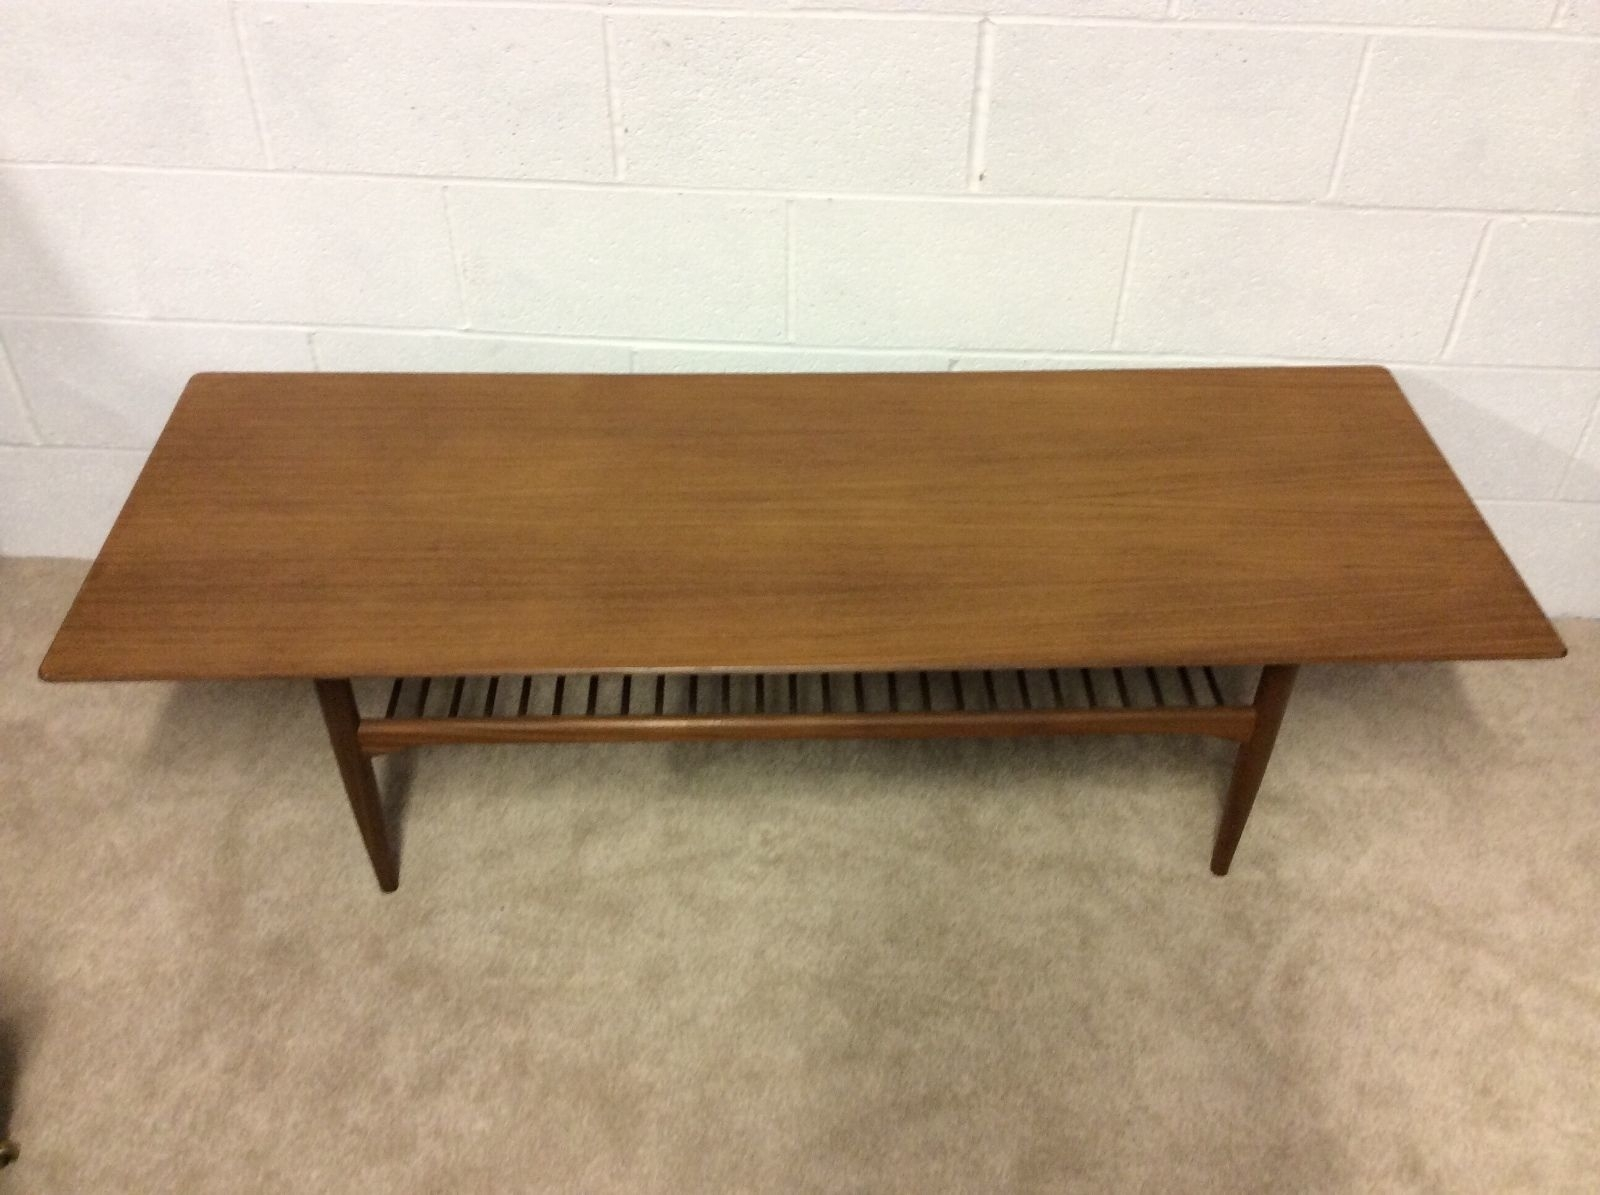 Very Large Vintage 1960S Retro Danish Teak Coffee Table & Magazine pertaining to Large Teak Coffee Tables (Image 27 of 30)